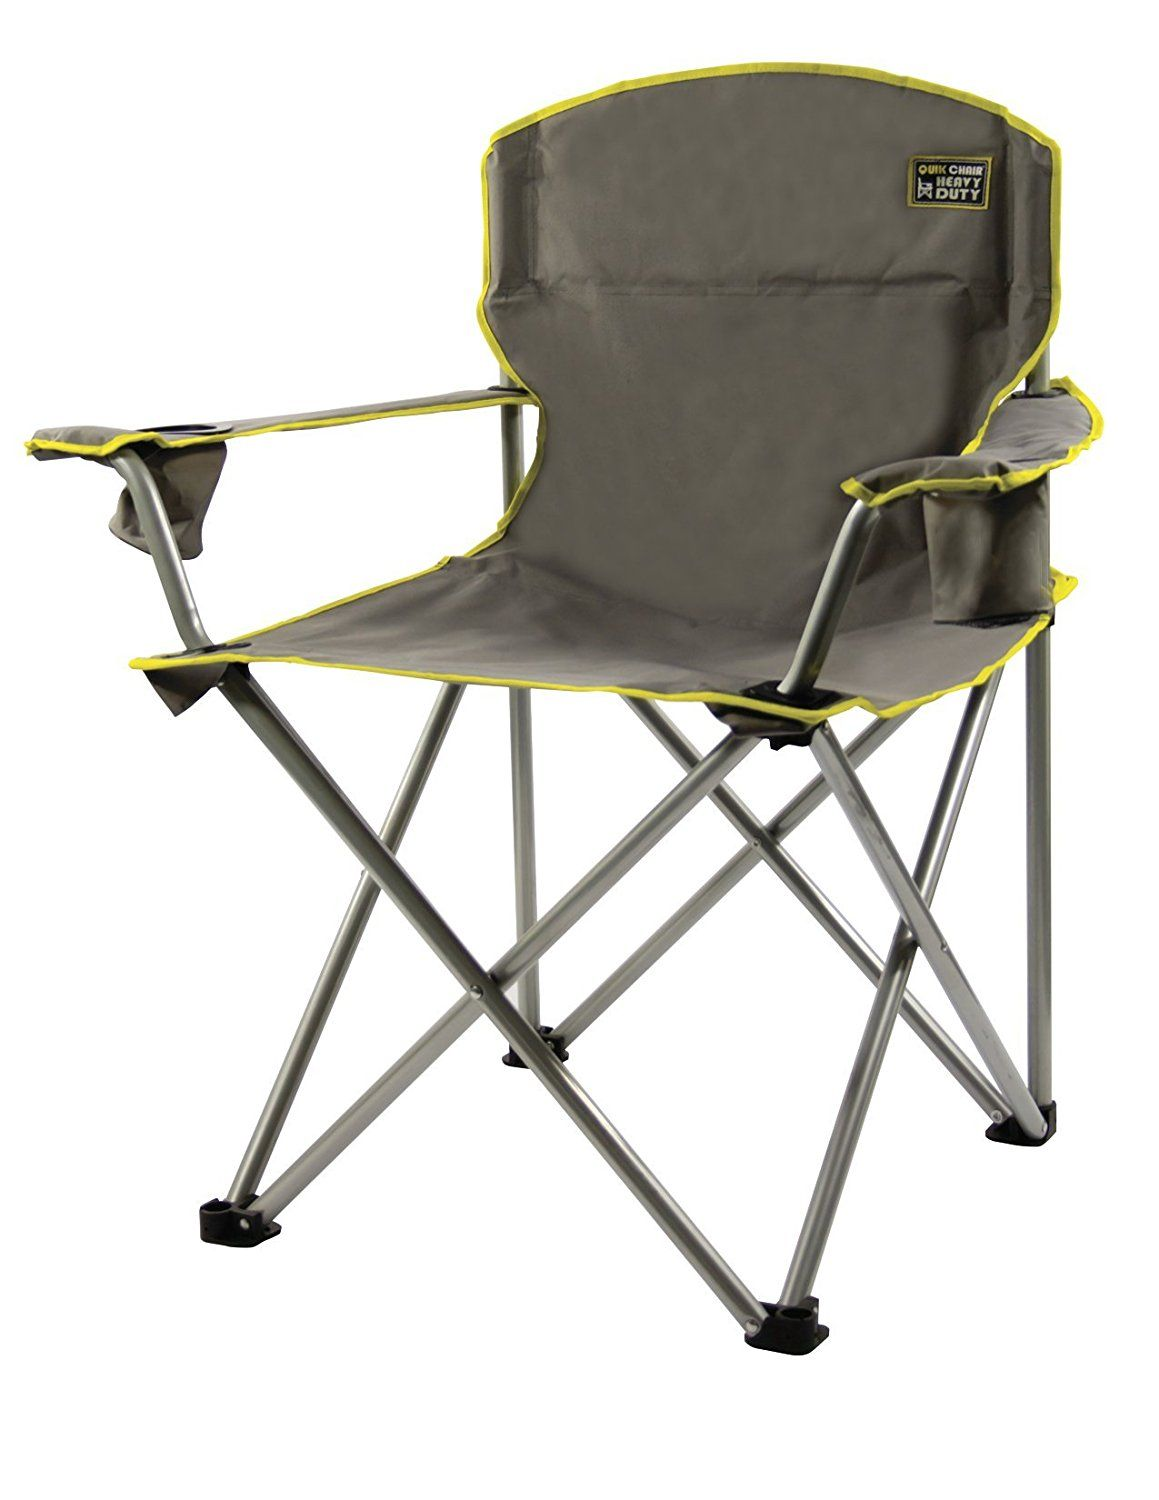 Quik Chair Heavy Duty 1 4 Ton Capacity Folding Chair With